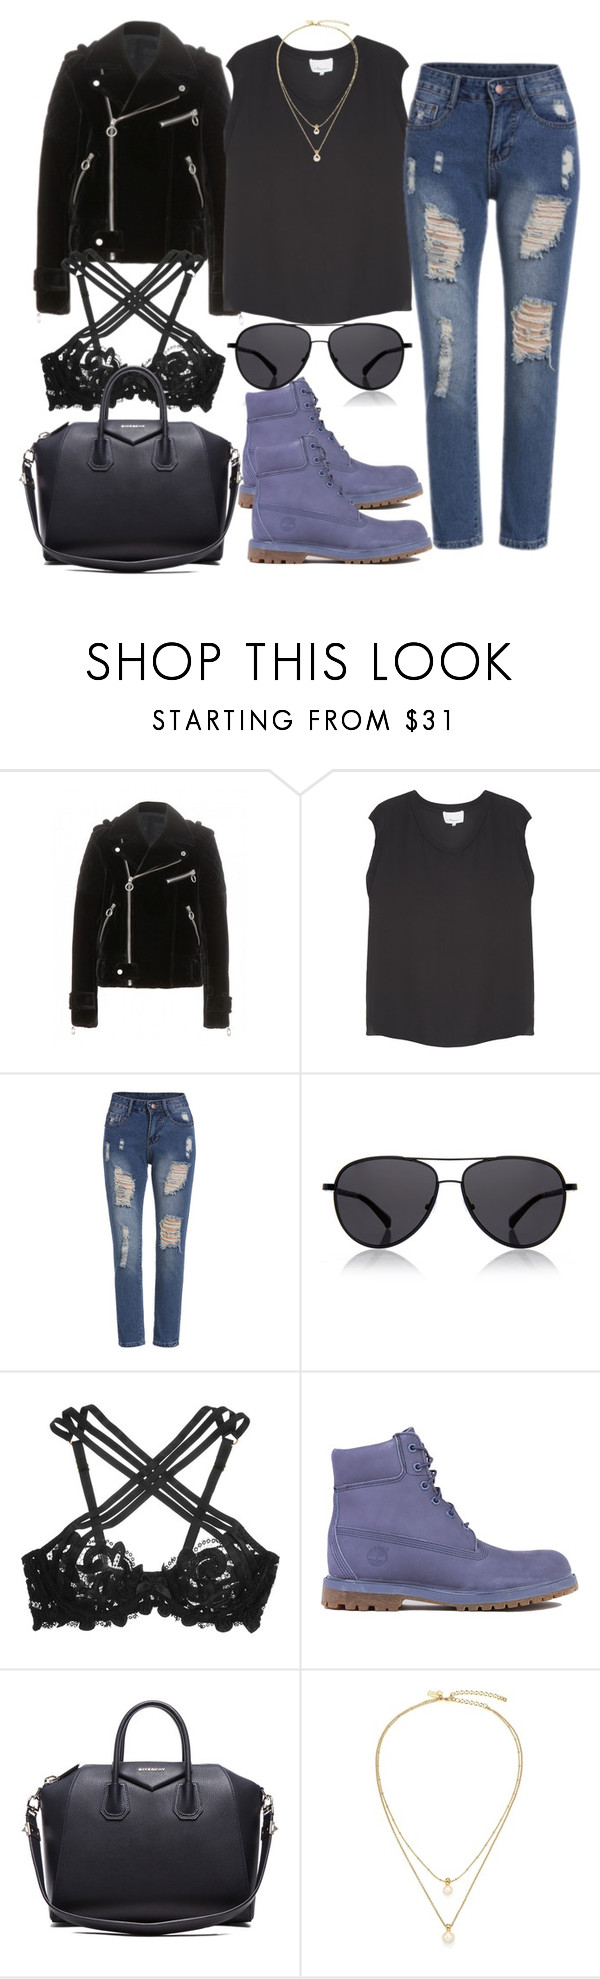 """Untitled #2960"" by dkfashion-658 ❤ liked on Polyvore featuring 3.1 Phillip Lim, The Row, Agent Provocateur, Timberland, Givenchy and Kate Spade"